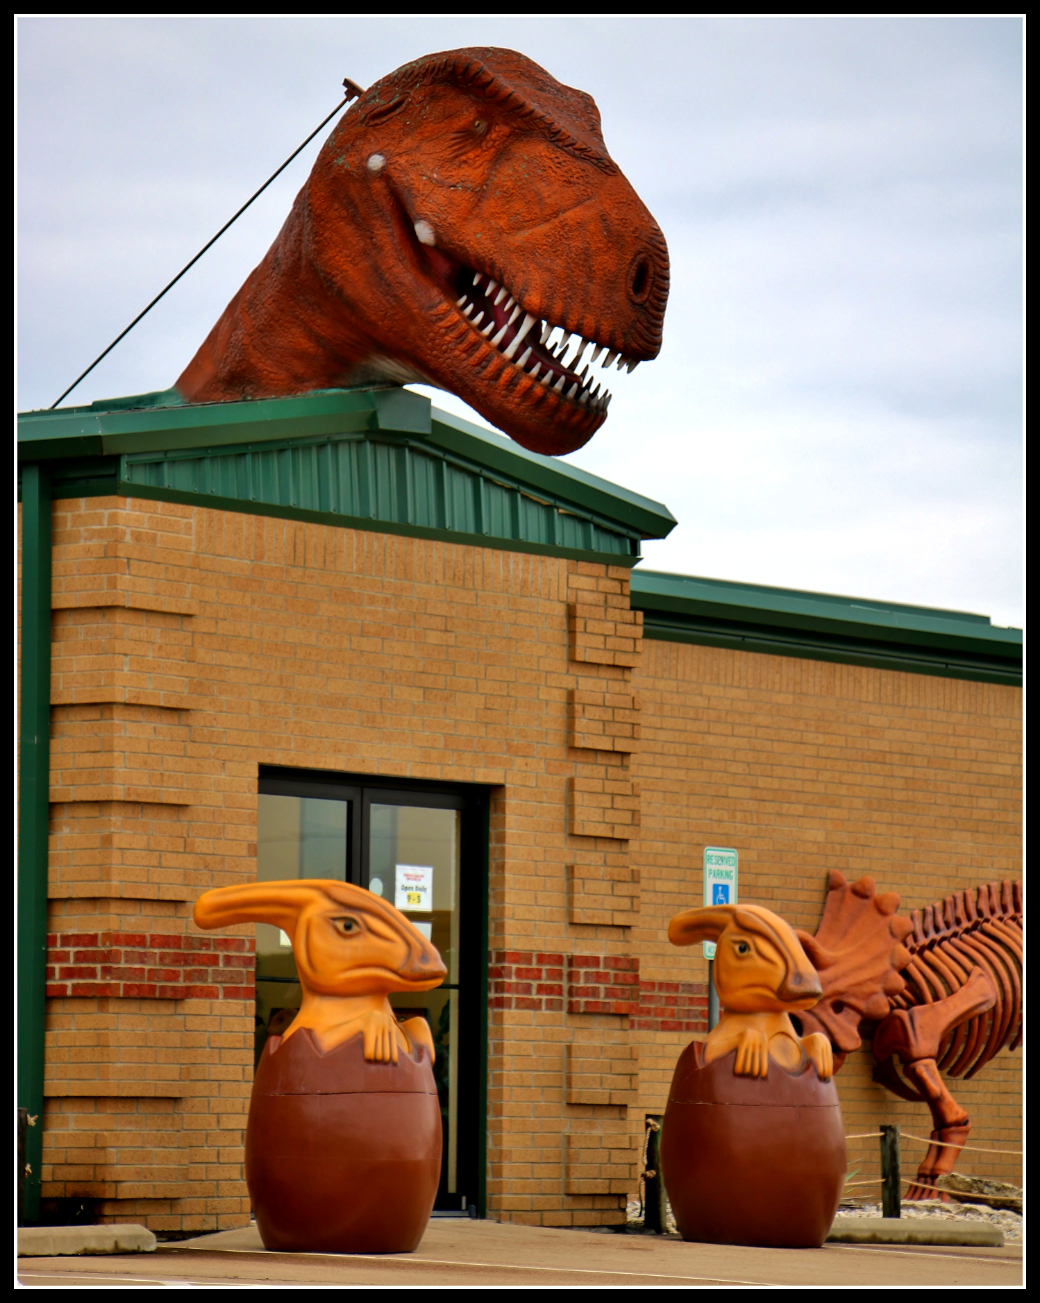 dinosaur-world-door & Dinosaur Worldu201d in Glen Rose Texas: Fakey but Fun! | Terror from ... pezcame.com